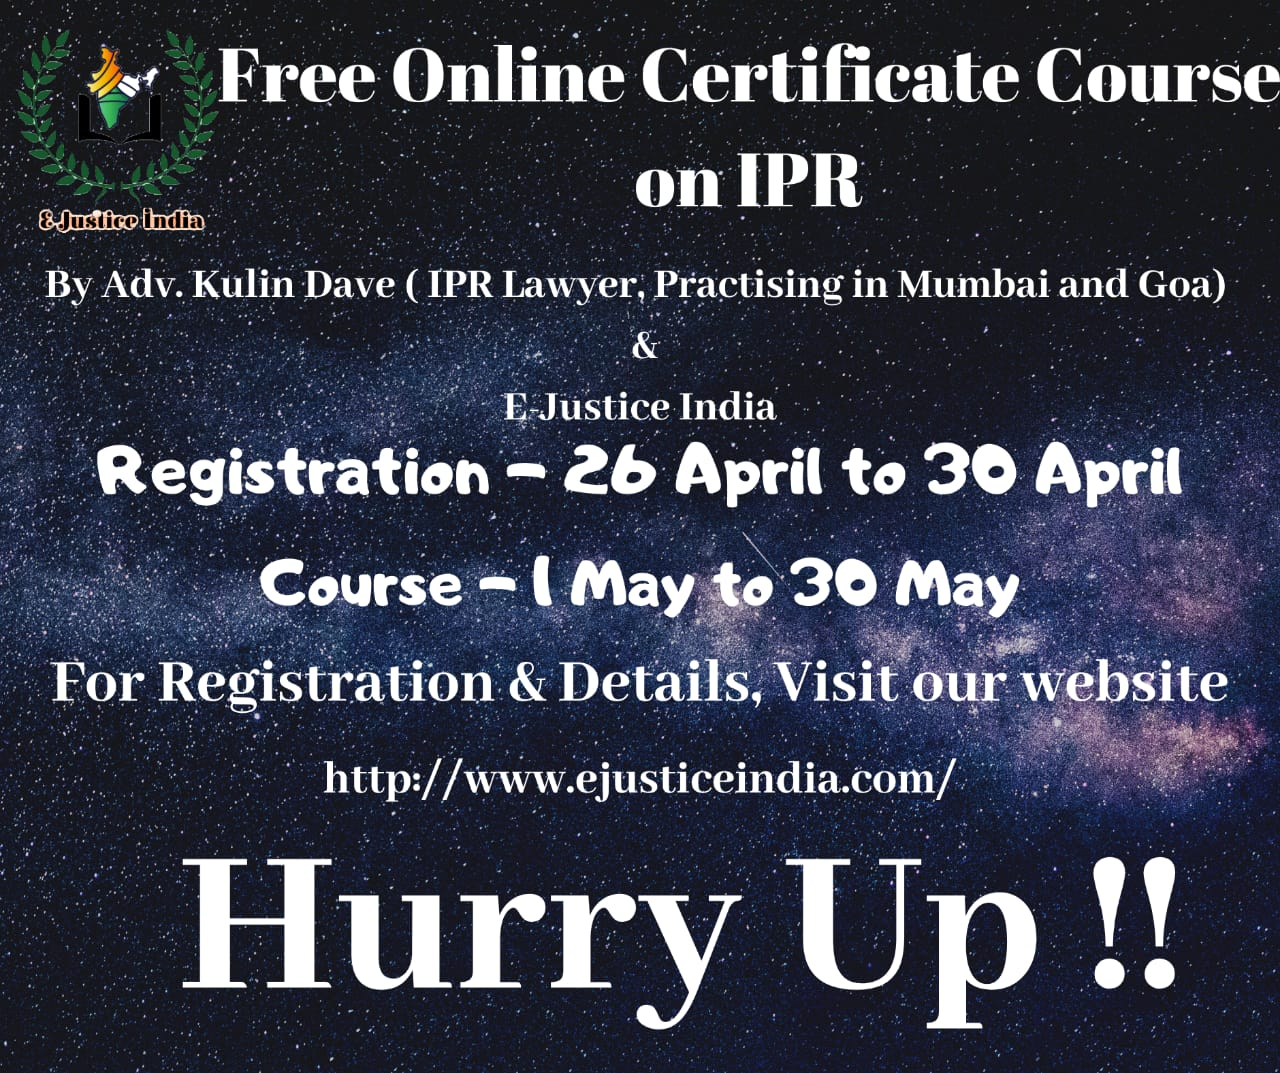 free-online-certificate-course-on-ipr